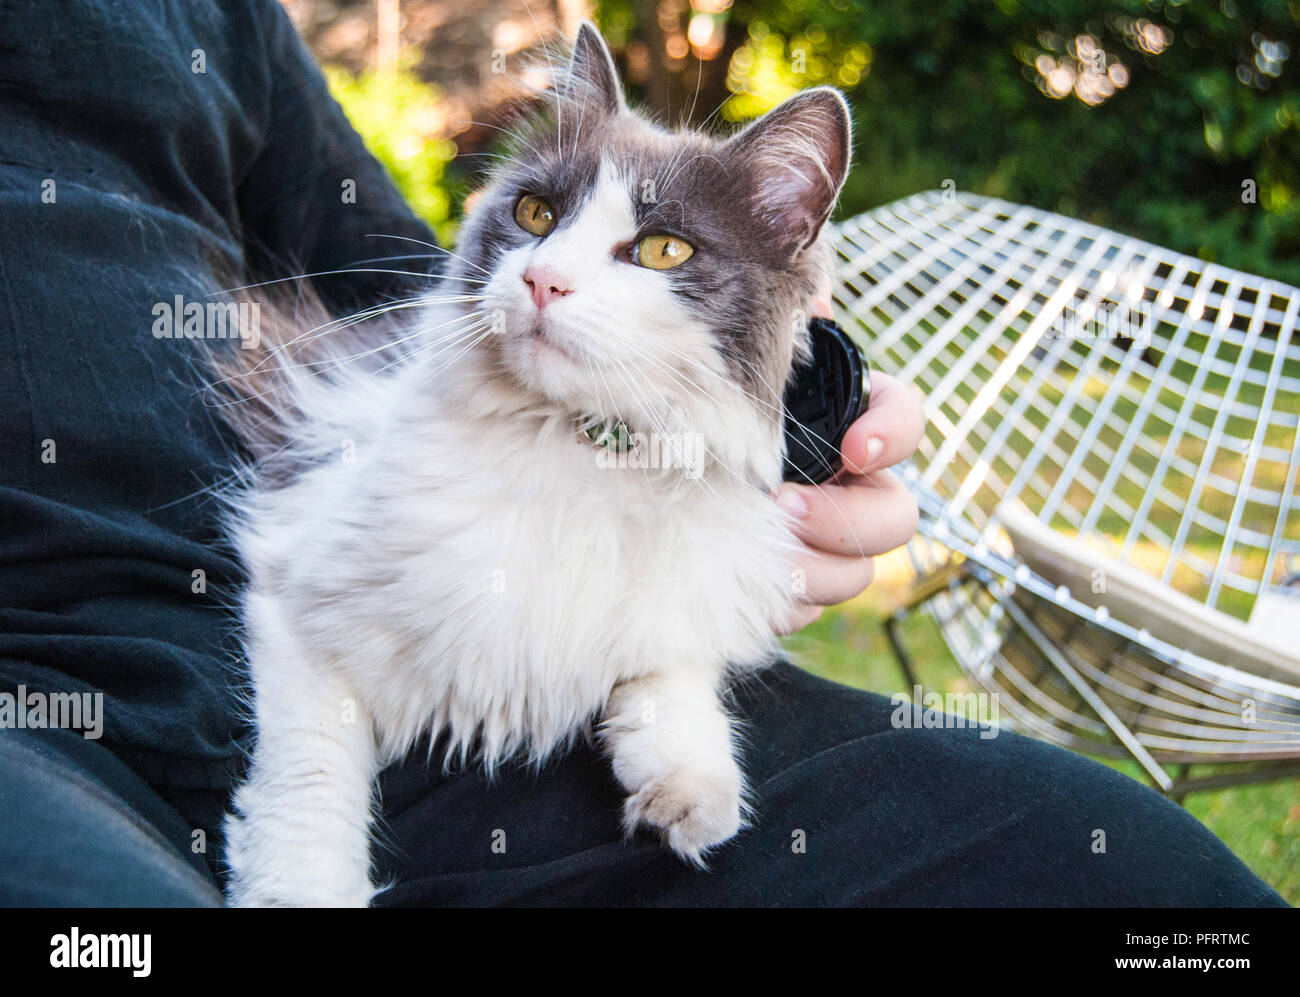 Beautiful cat being pet while sitting in someone's lap Stock Photo